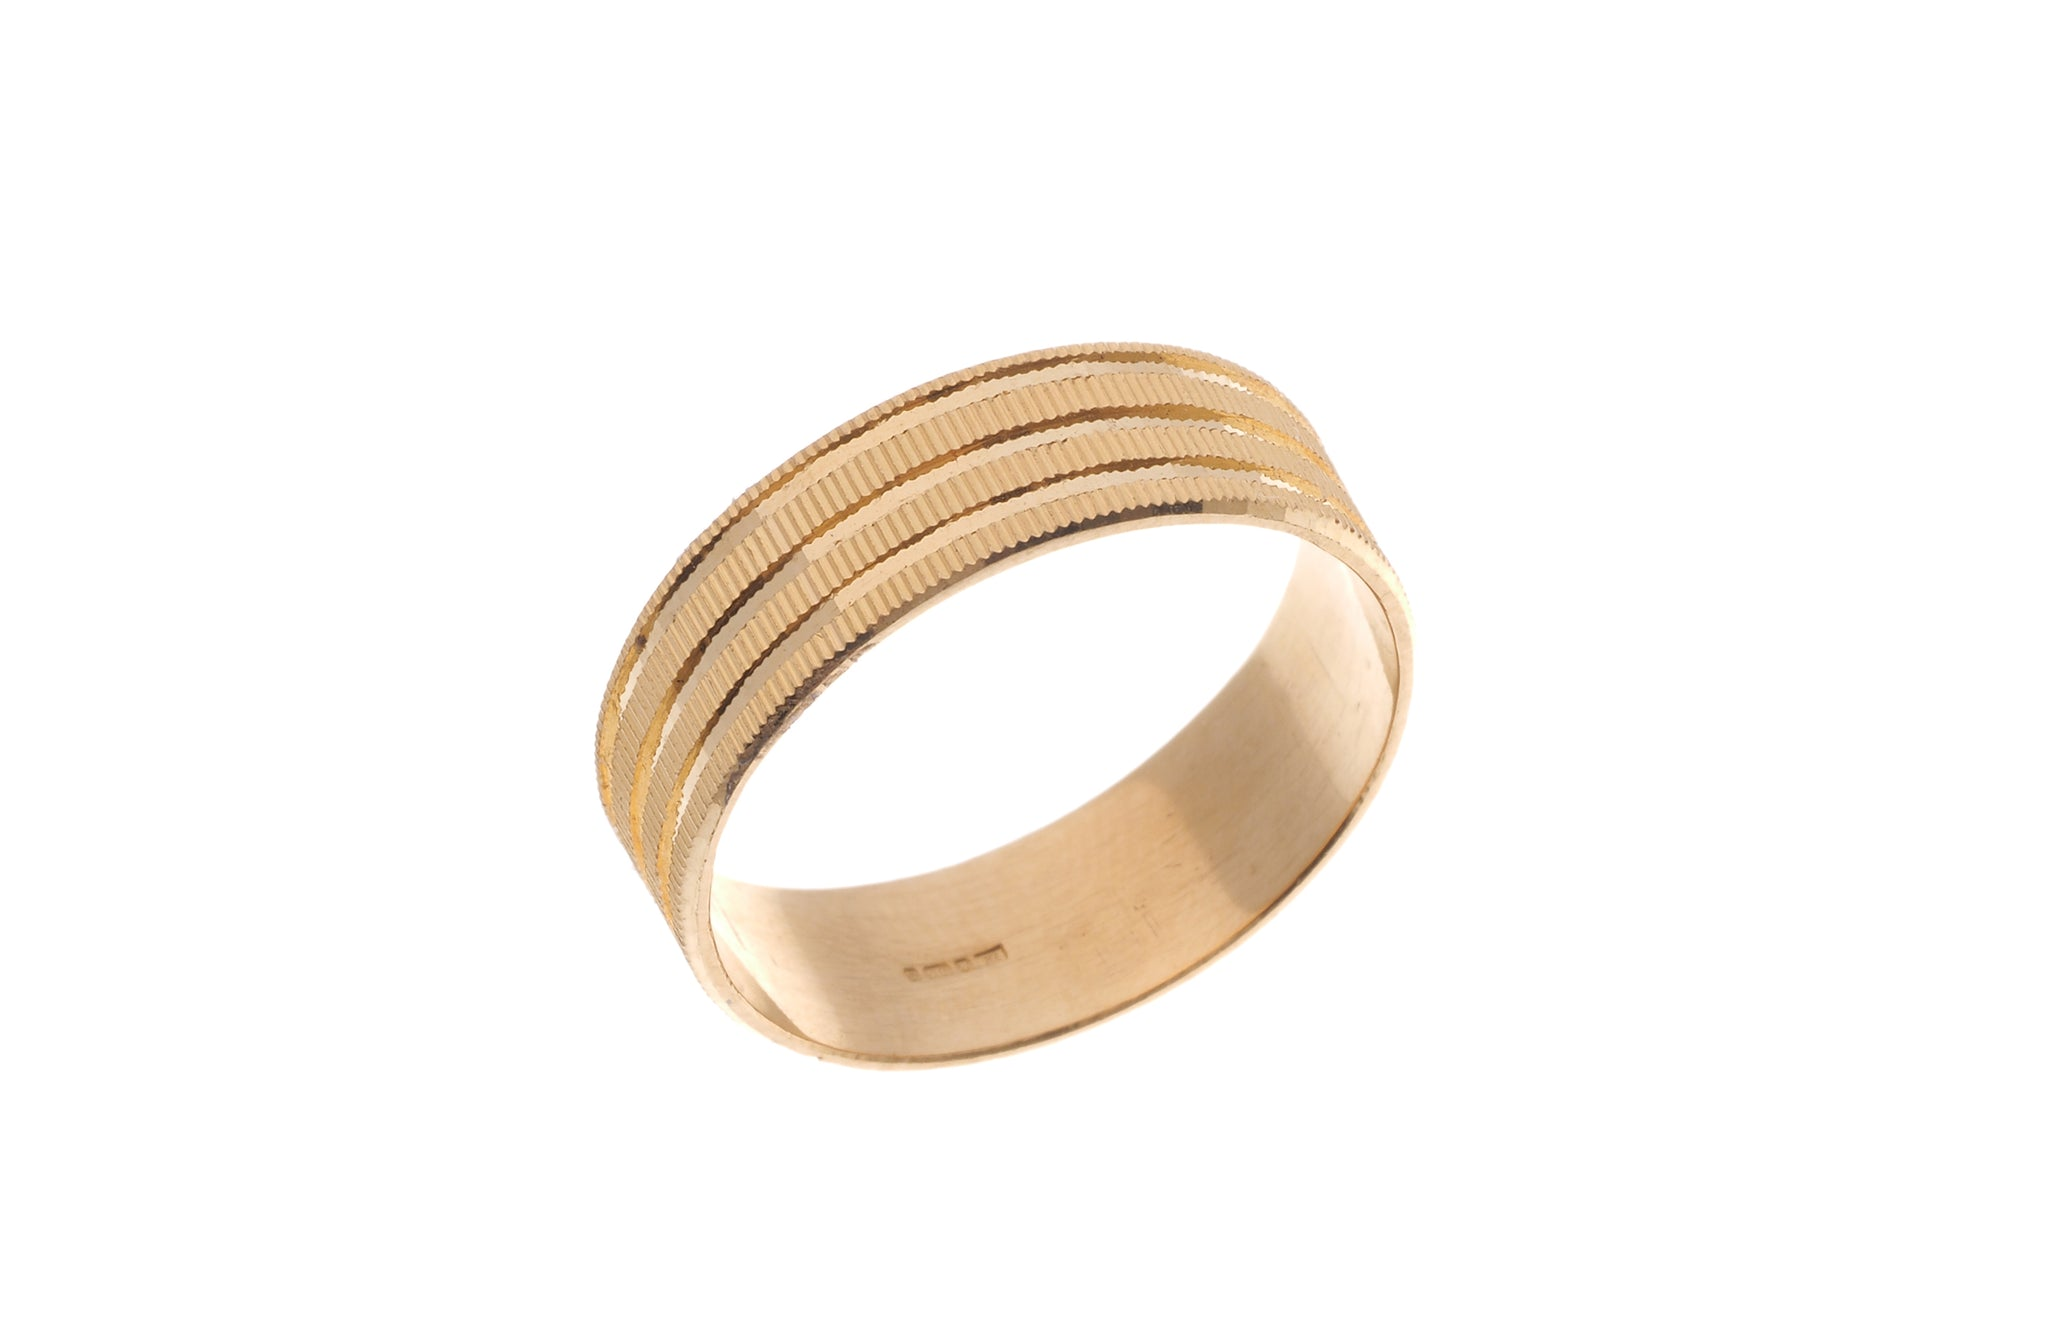 22ct Gold Gents Wedding Band (5.5g) GR-6157